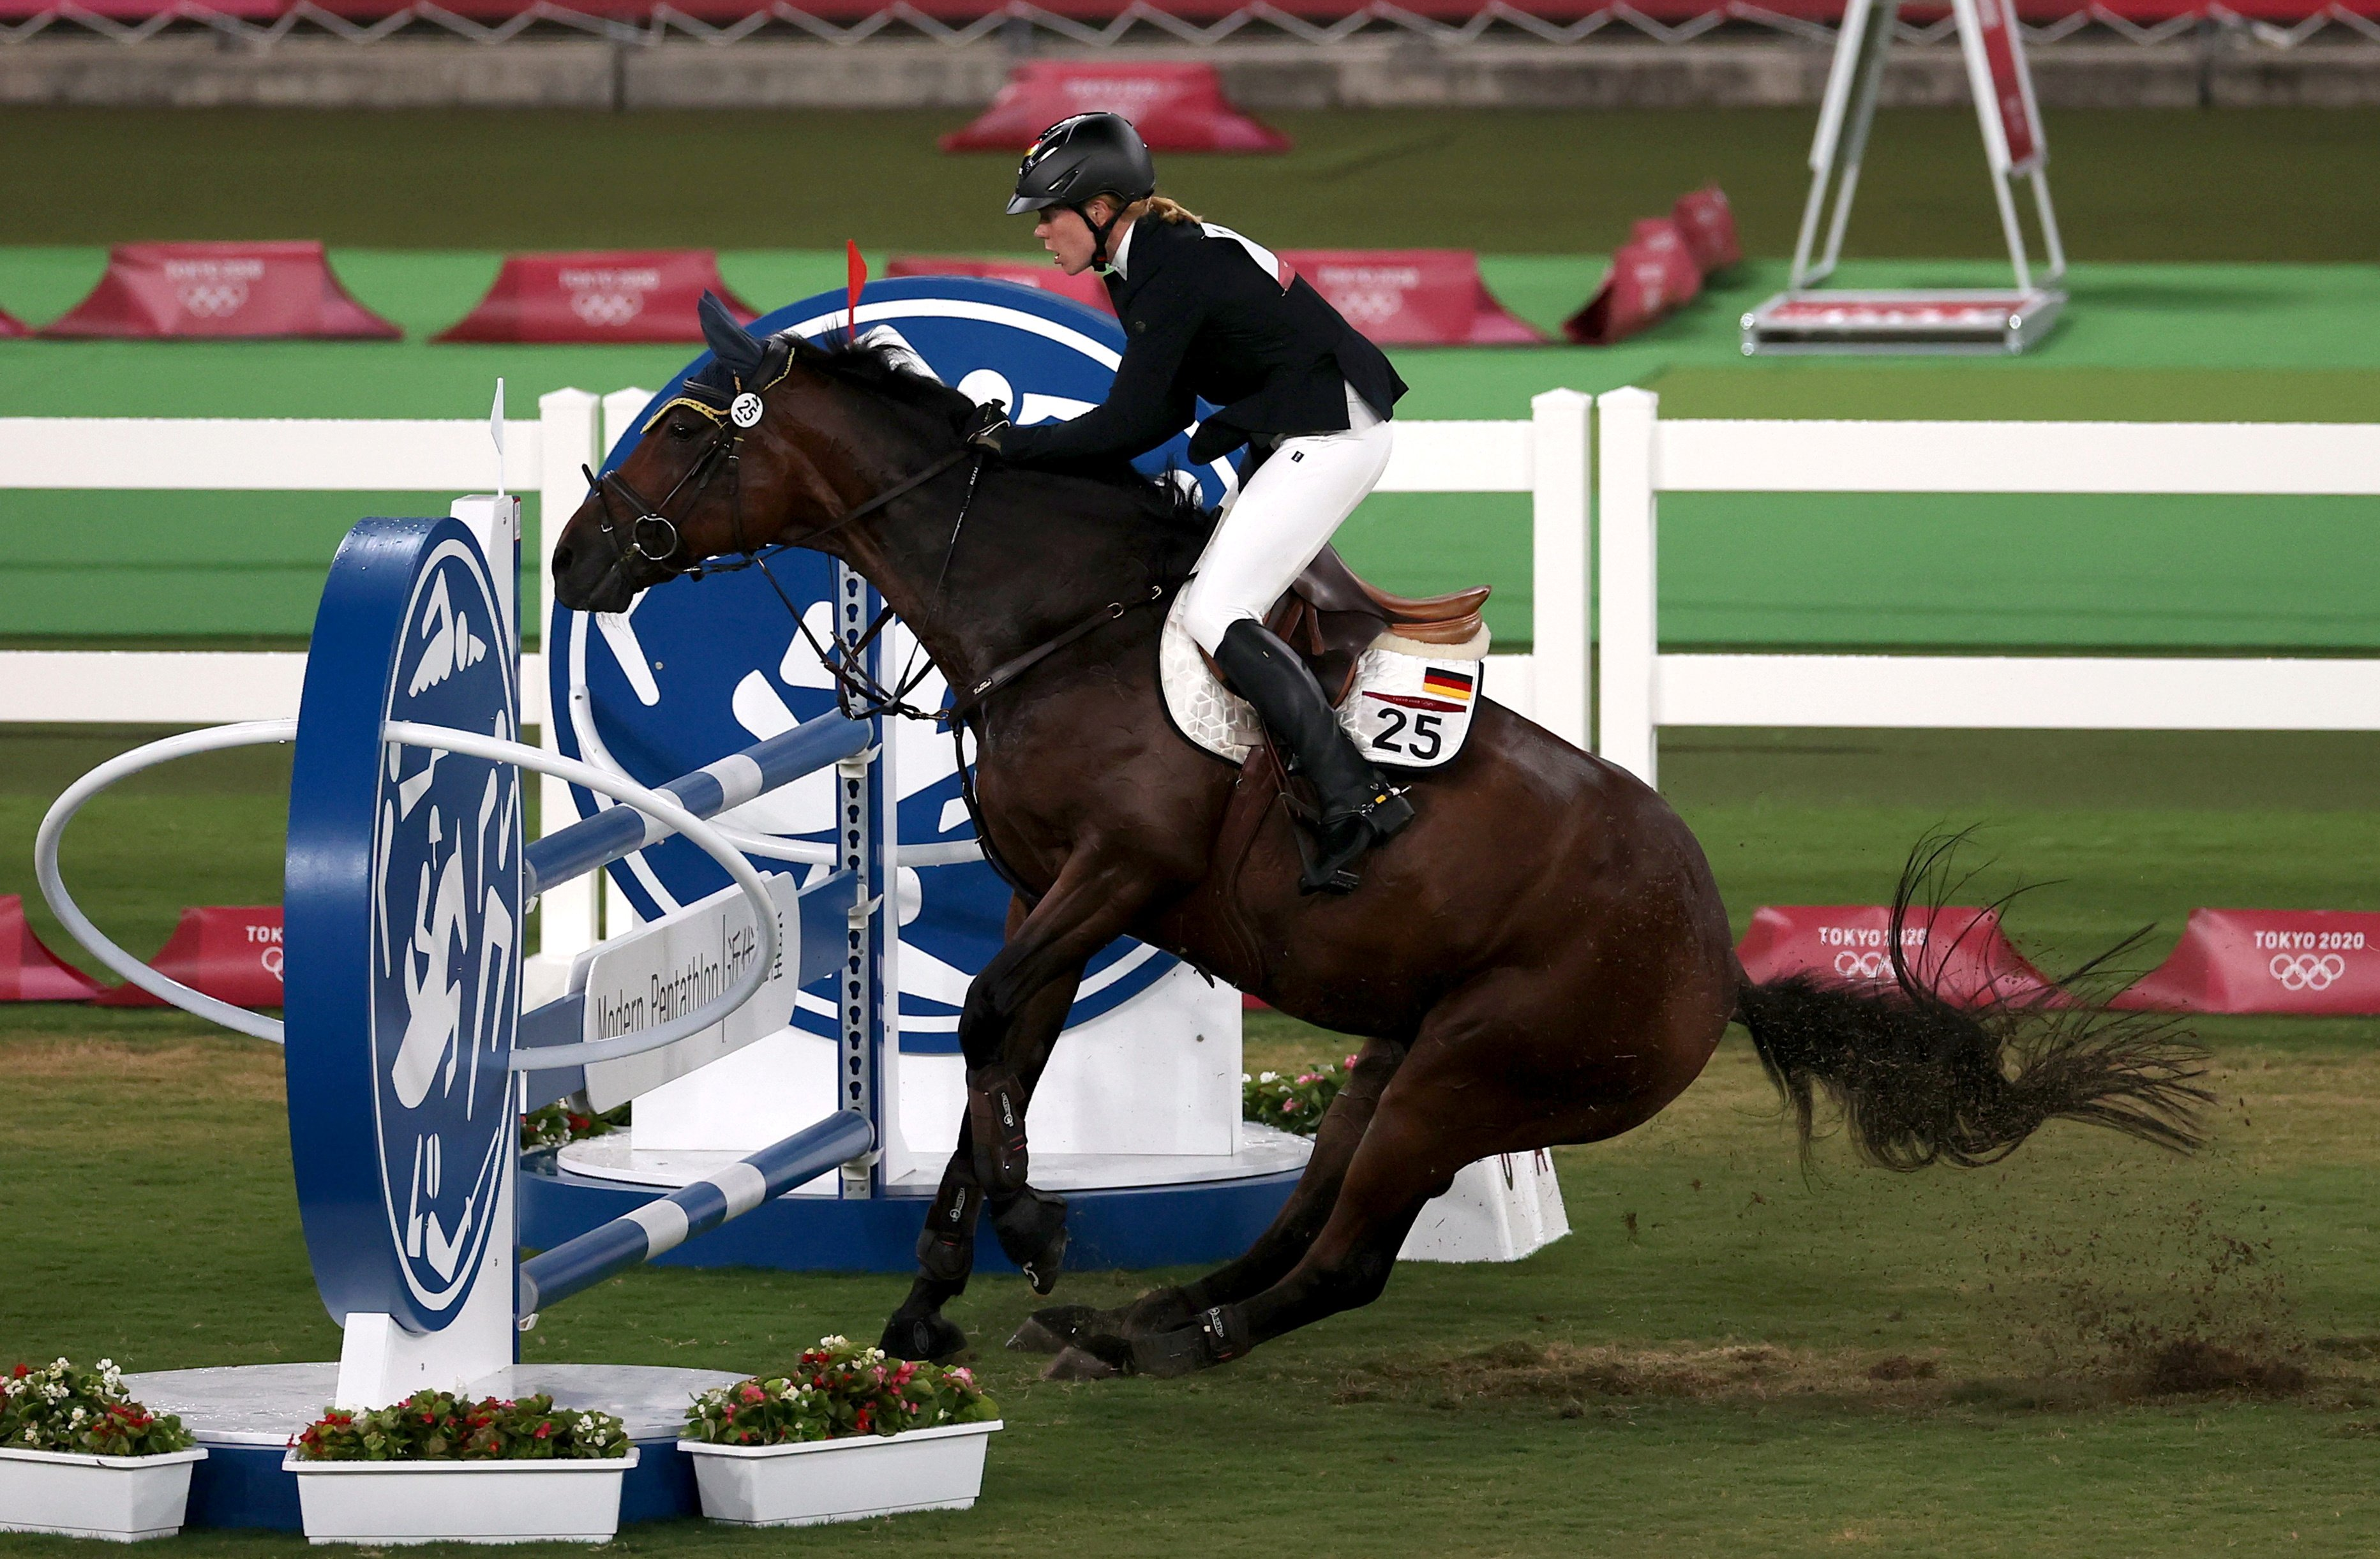 German coach kicked out of Olympics for punching horse that wouldn't jump